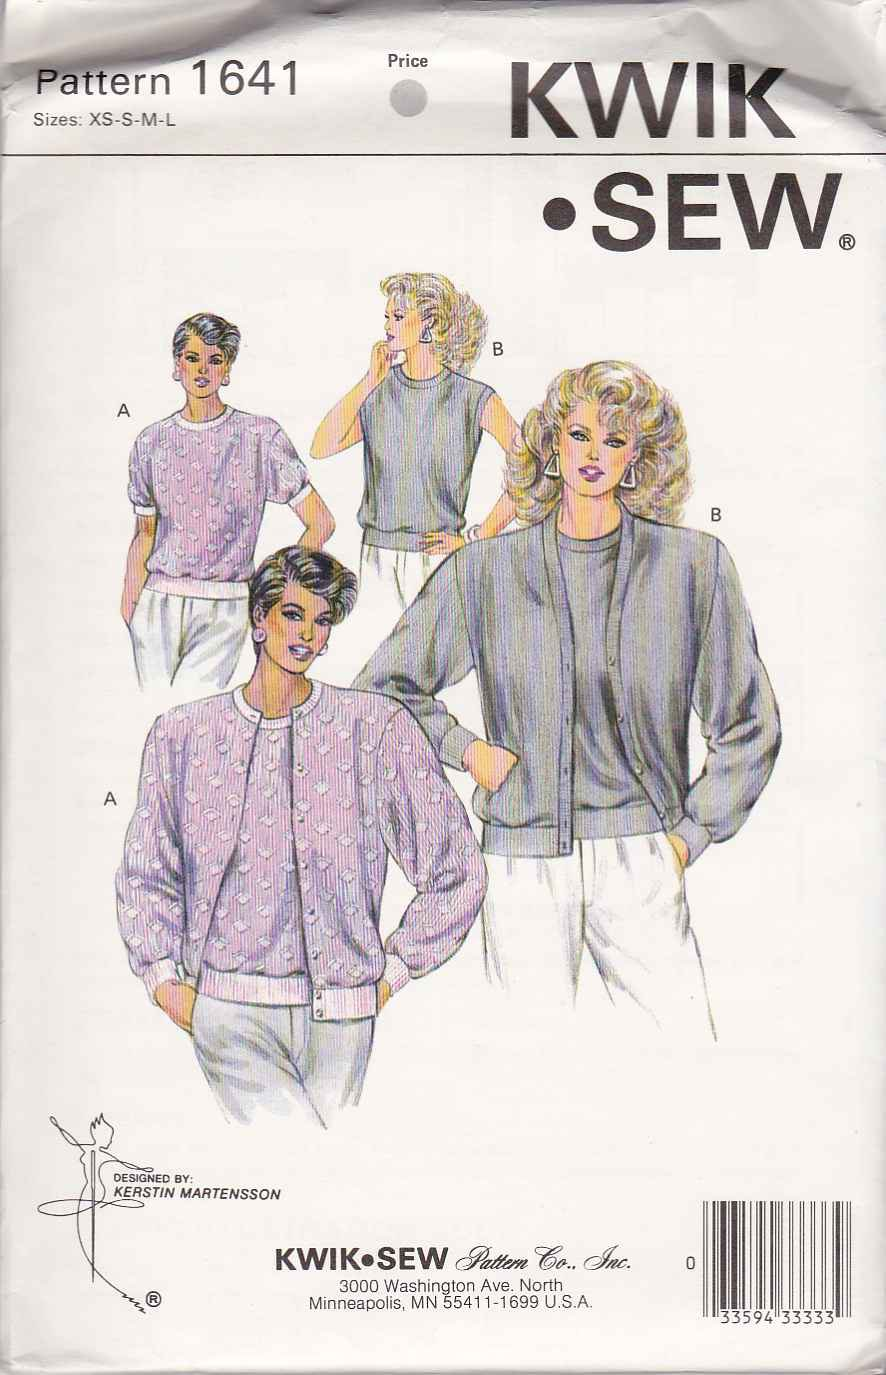 Kwik Sew Sewing Pattern 1641 Misses Size XS-L Classic Twin Set Knit Cardigan Shell Top